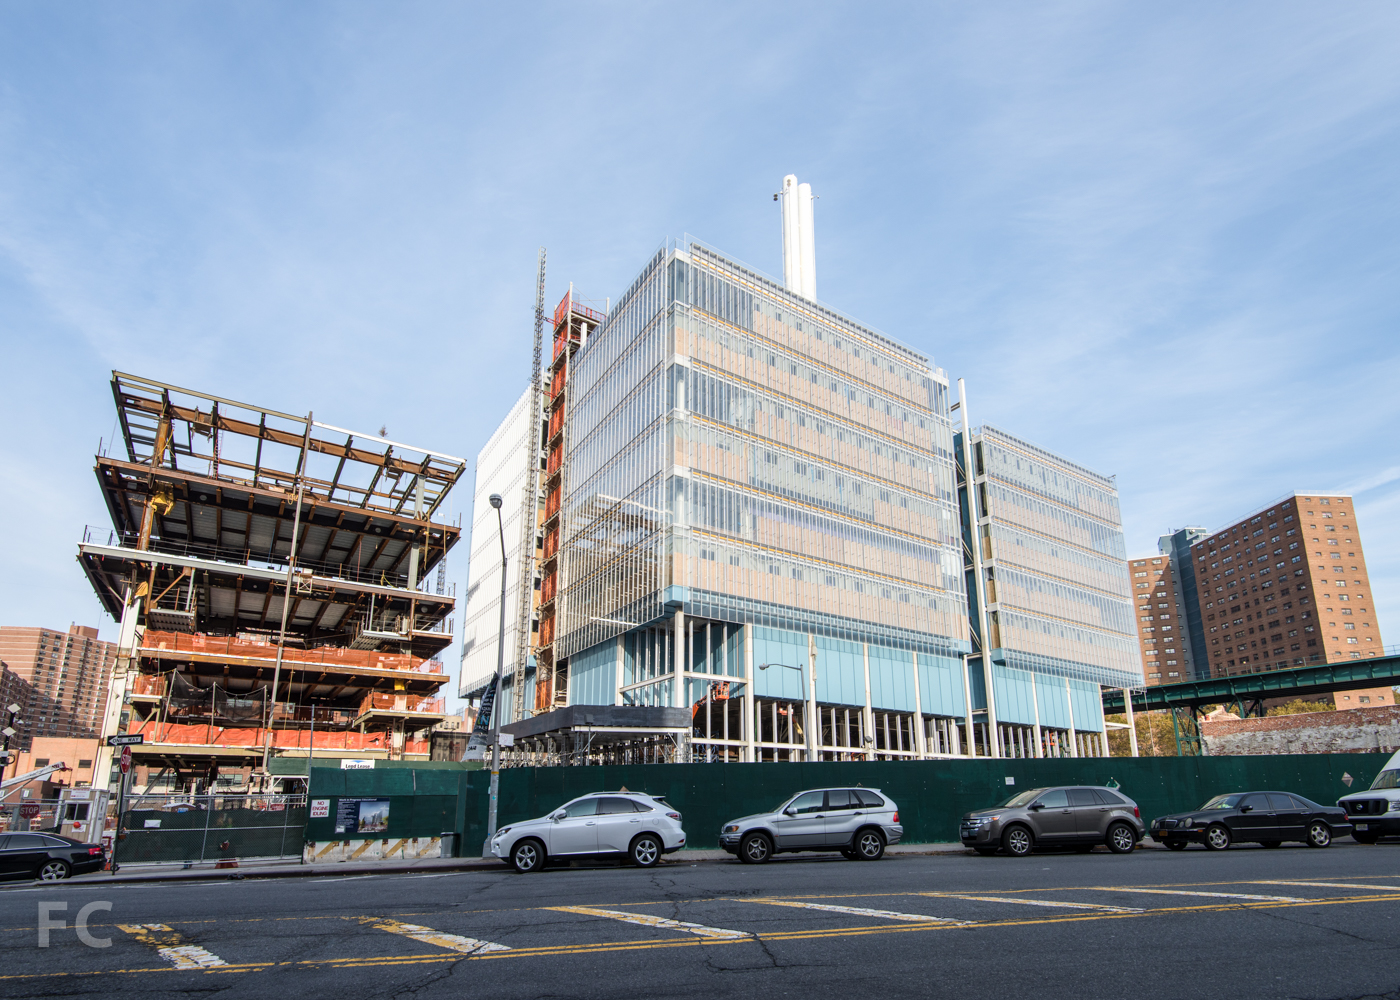 South facade of the Science Center (right) and the Center for the Arts (left)from West 125th Street.